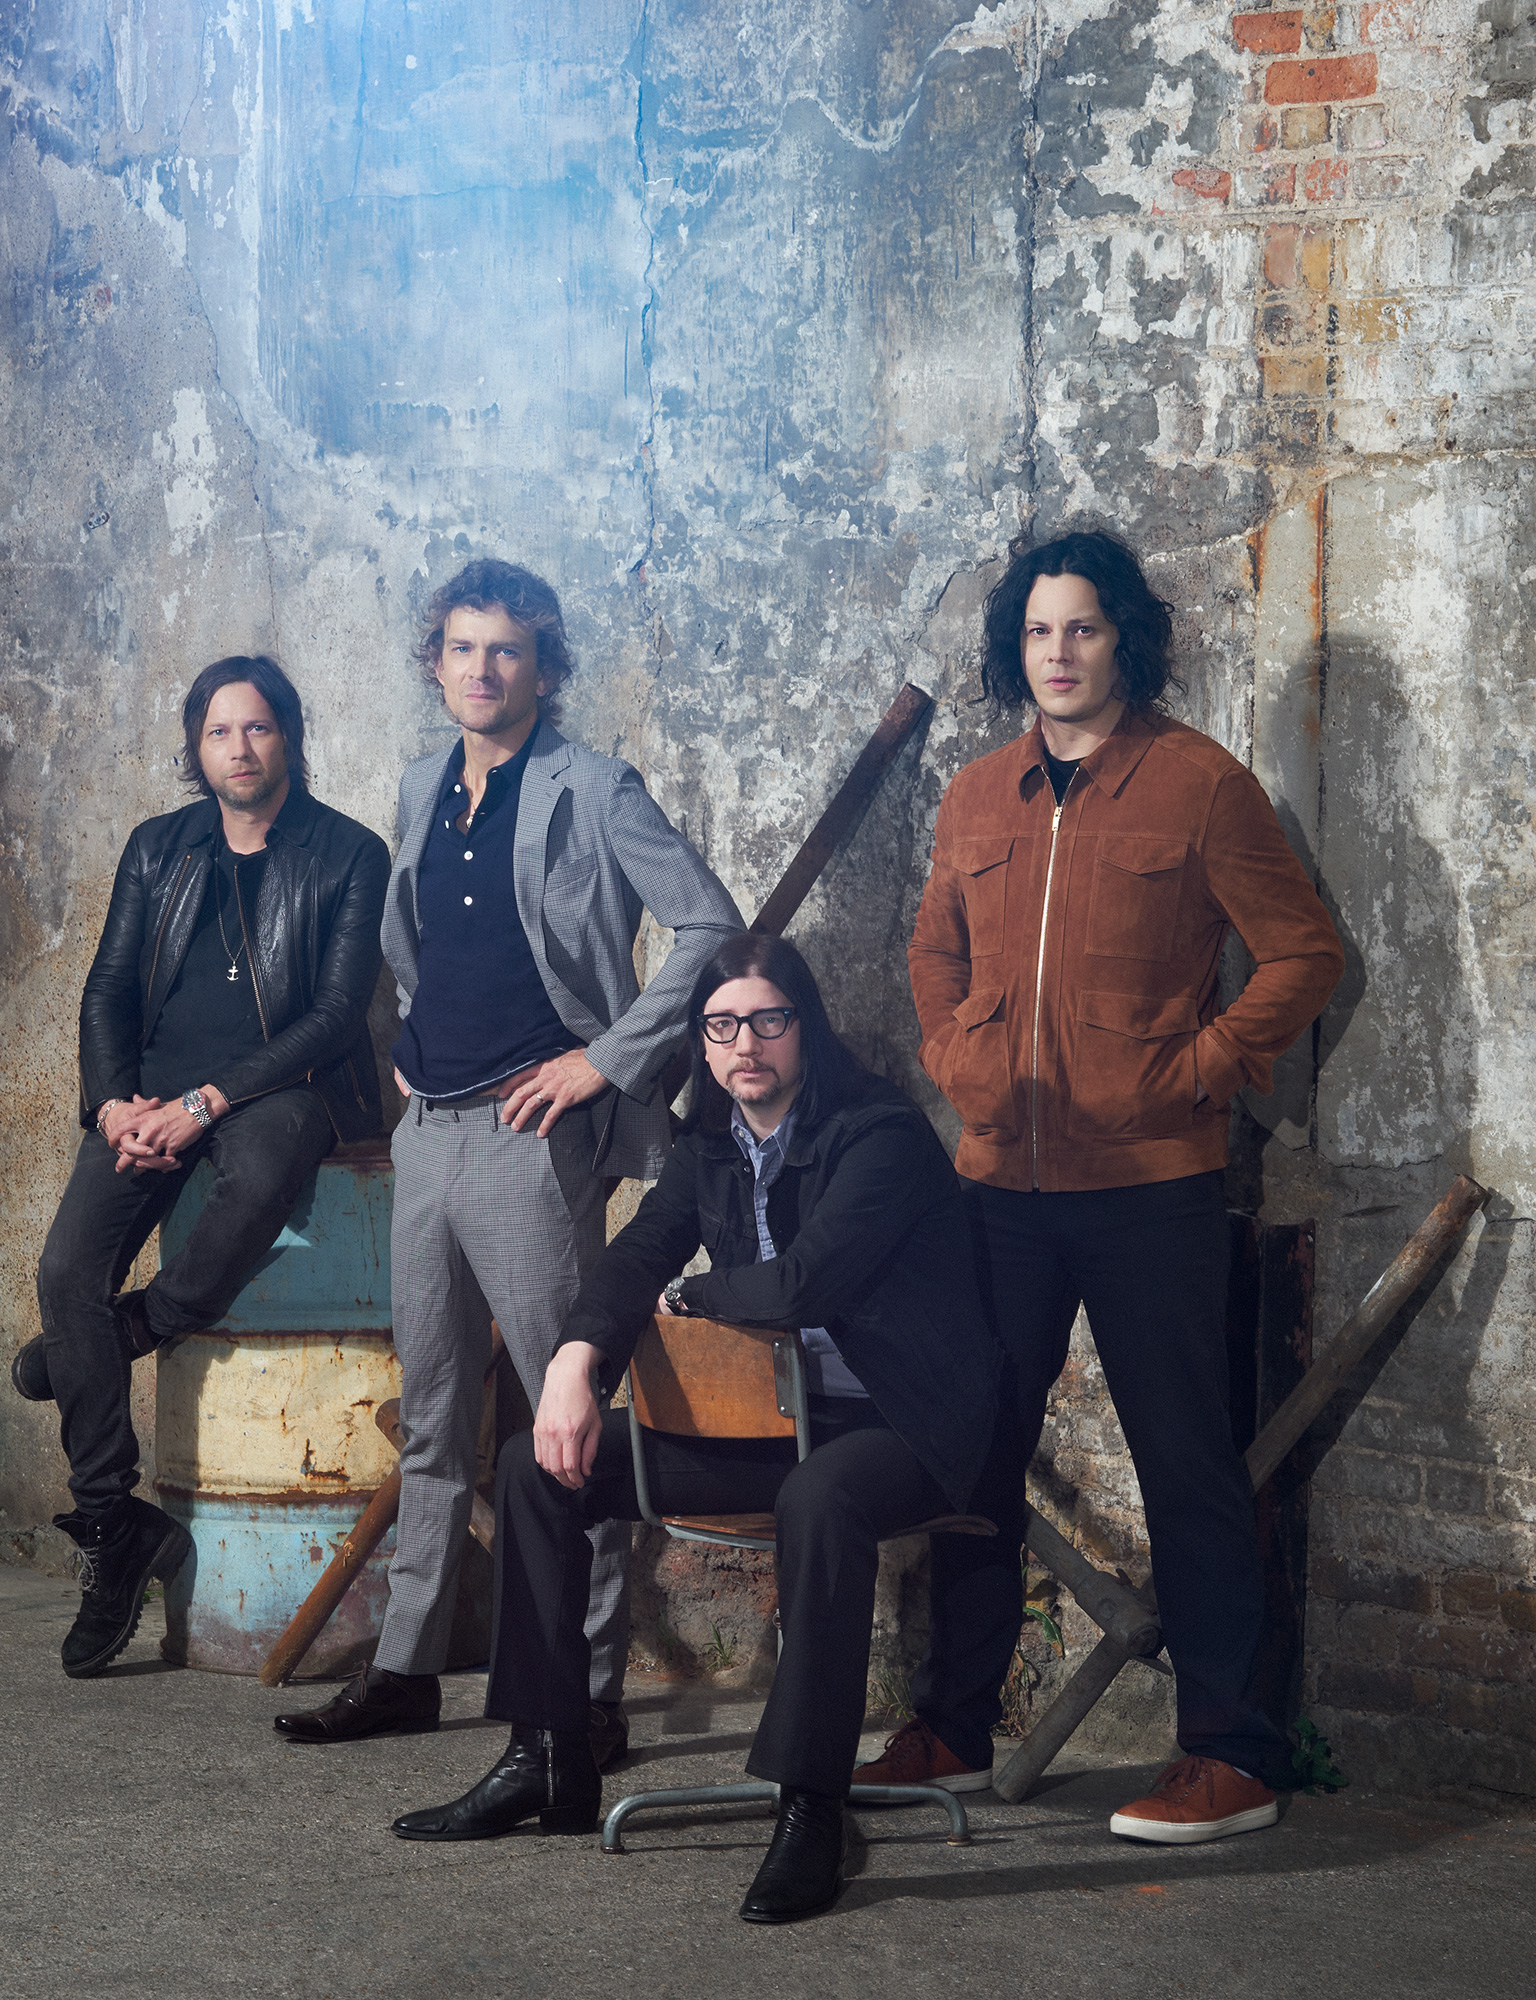 Raconteurs_Billboard_0126_RT_noise.jpg